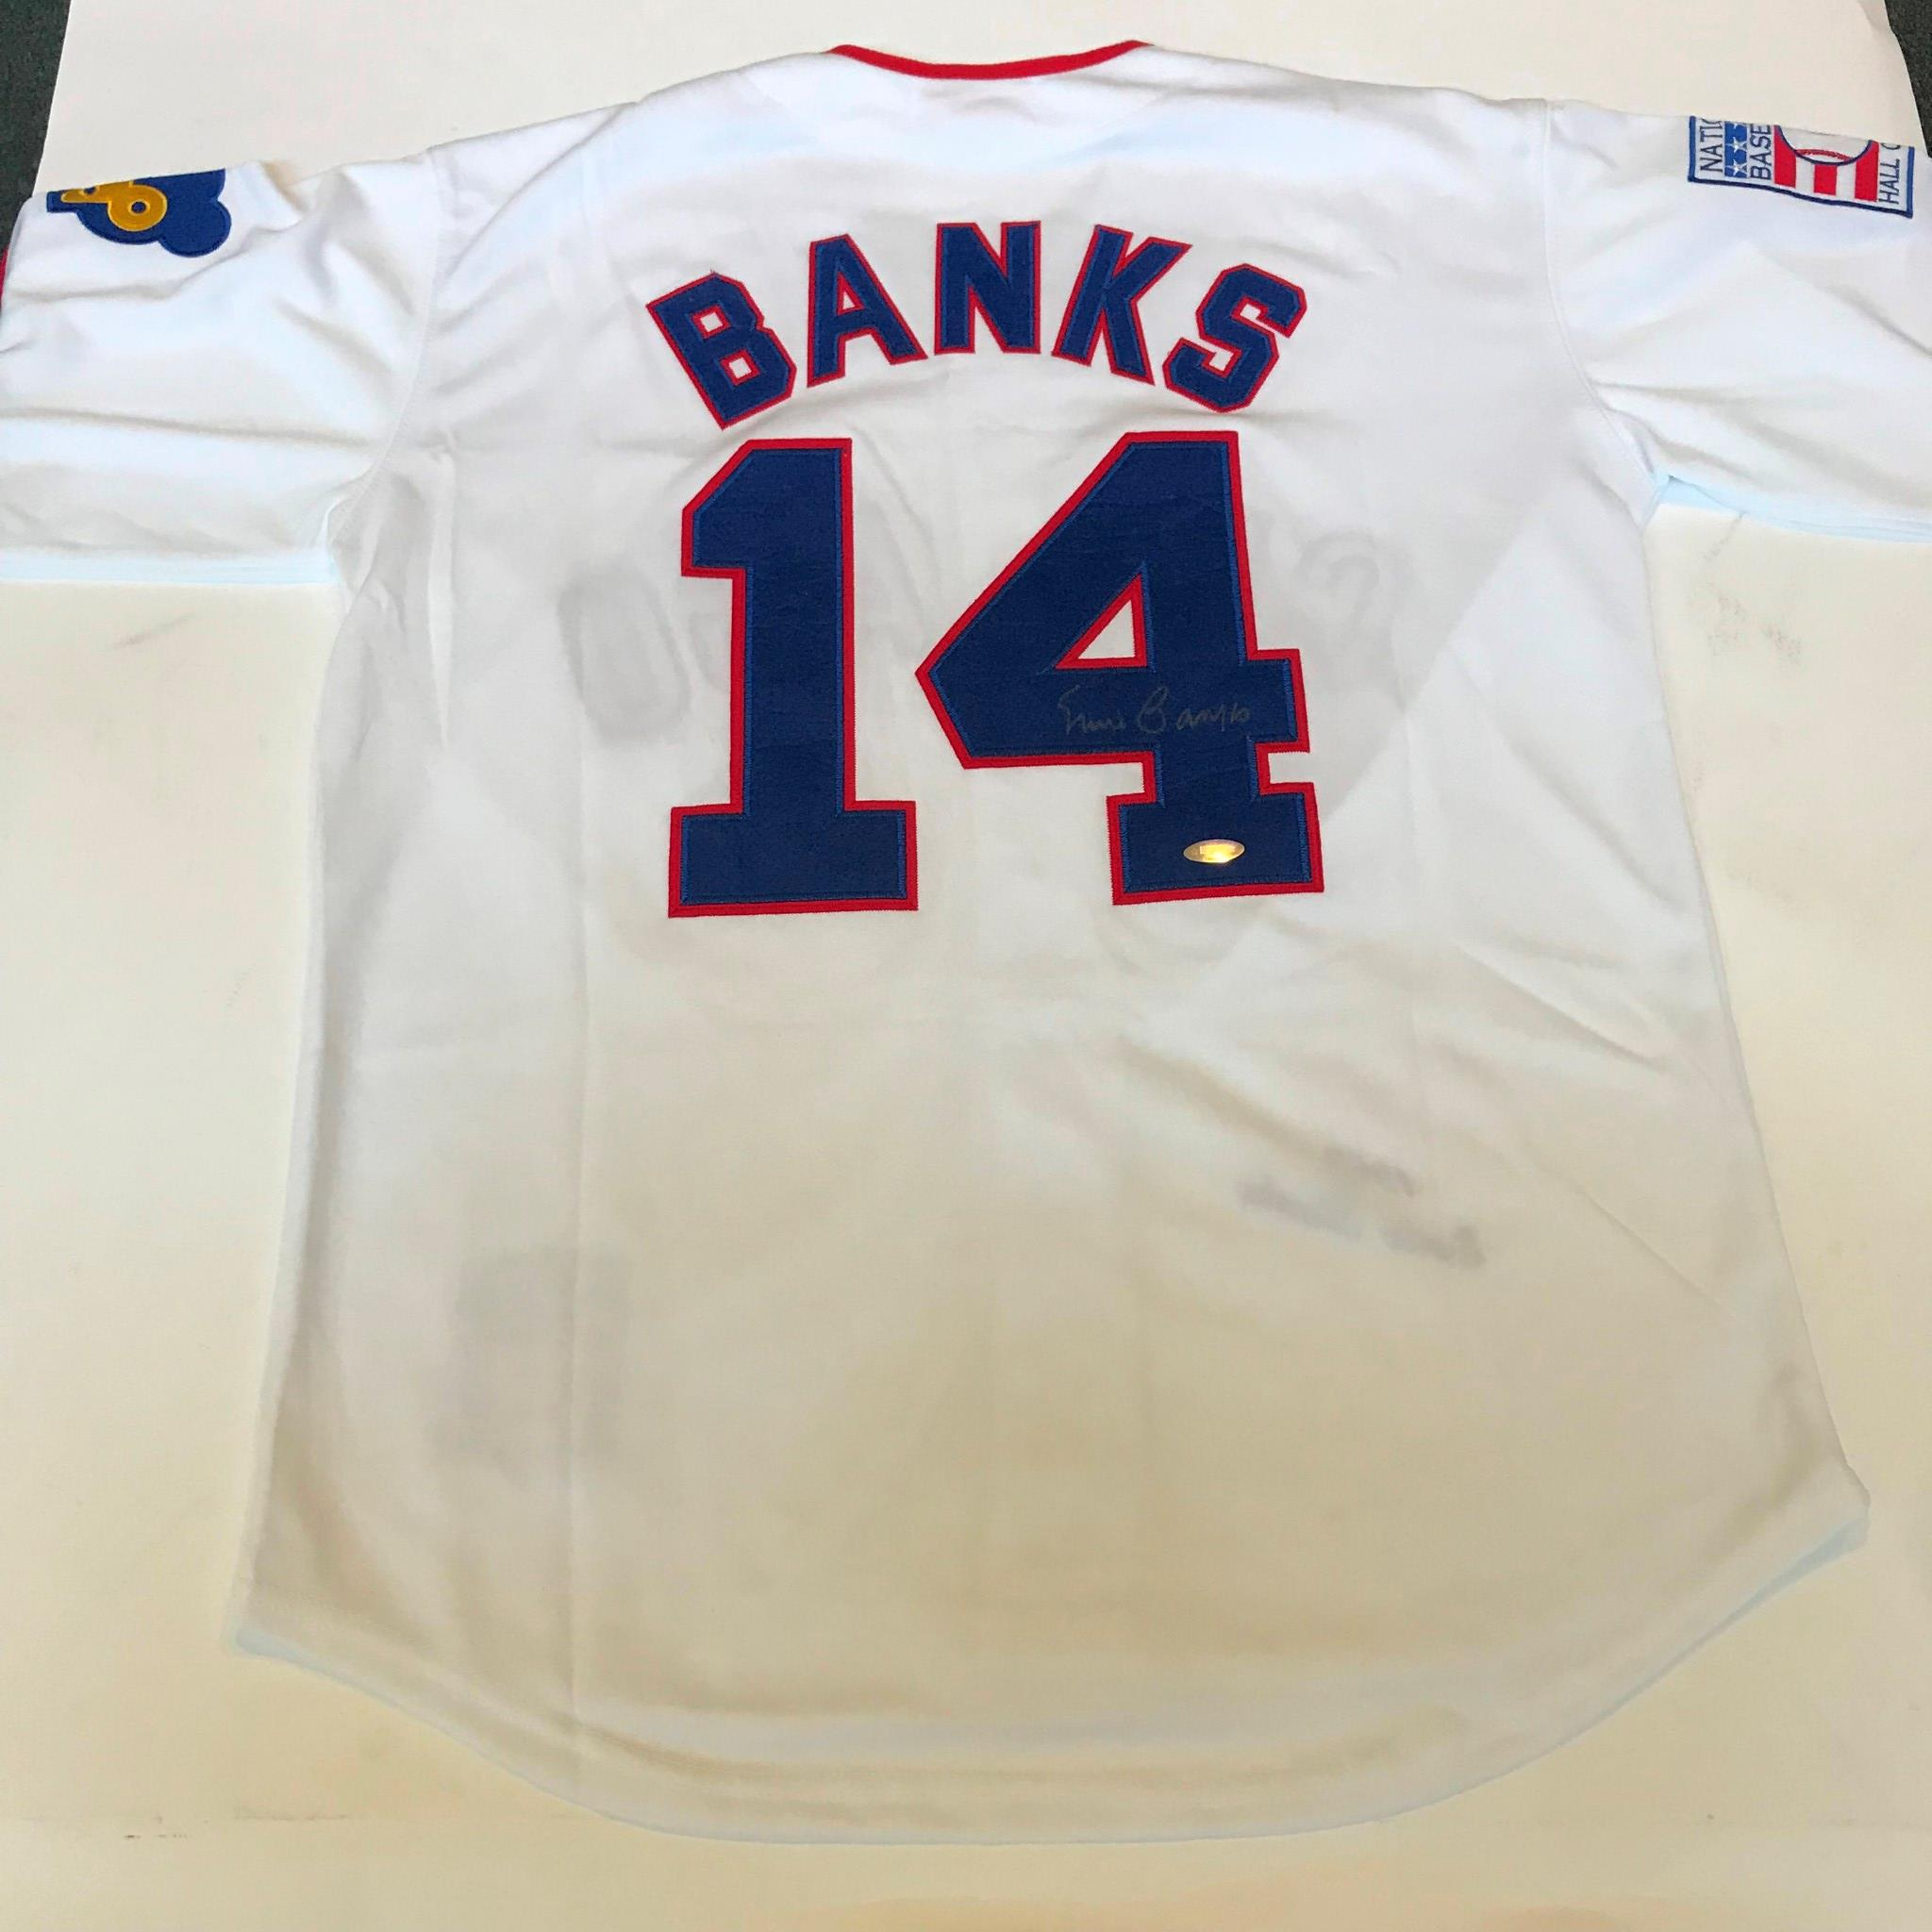 timeless design f6ef4 b23a1 Details about Ernie Banks Signed Authentic 1968 Mitchell & Ness Chicago  Cubs Jersey Tristar